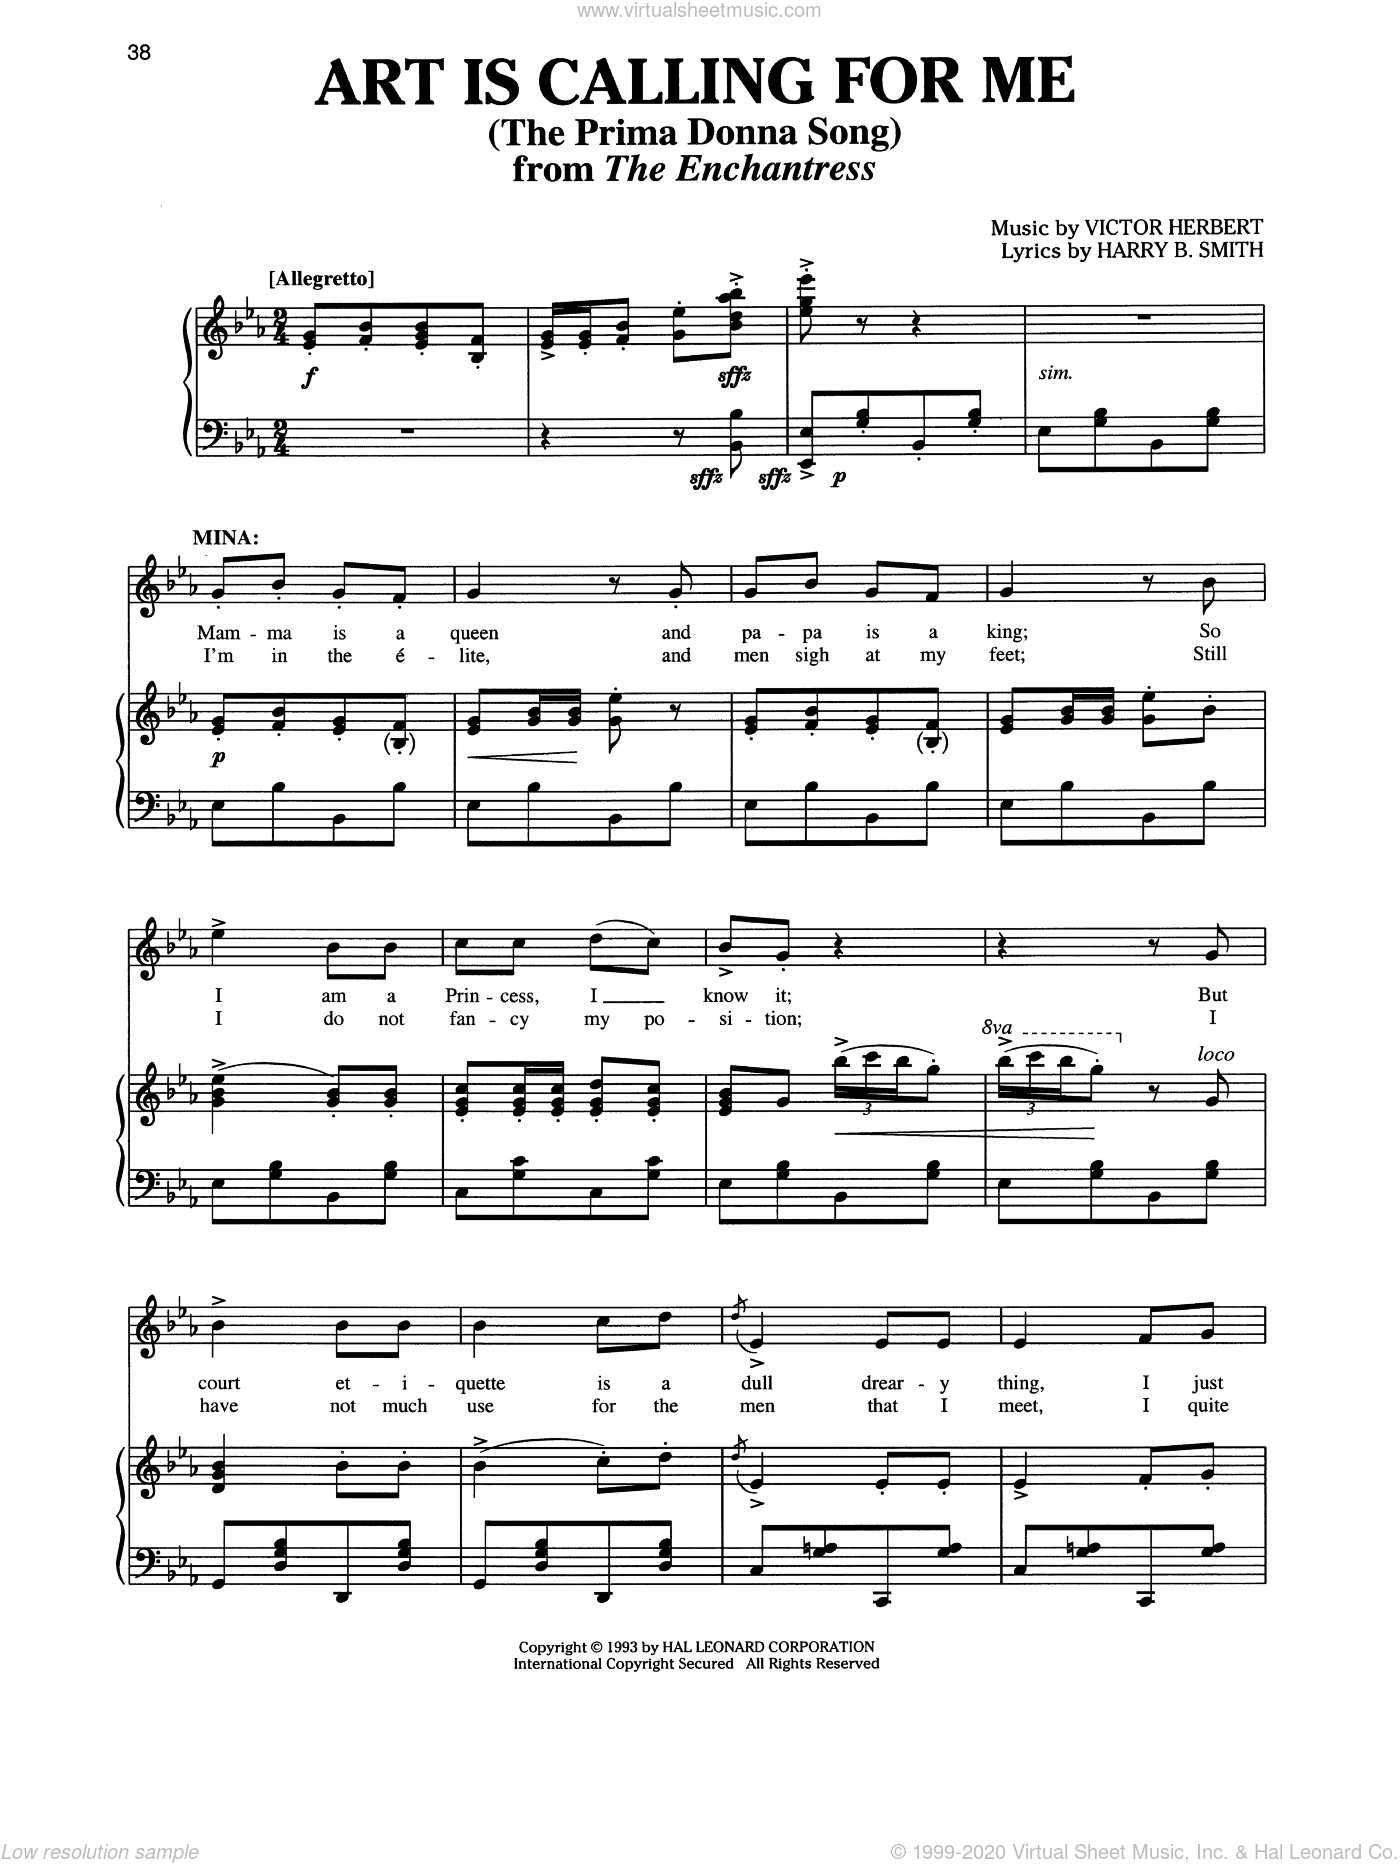 Art Is Calling For Me sheet music for voice and piano by Victor Herbert, Richard Walters and Harry B. Smith, intermediate skill level